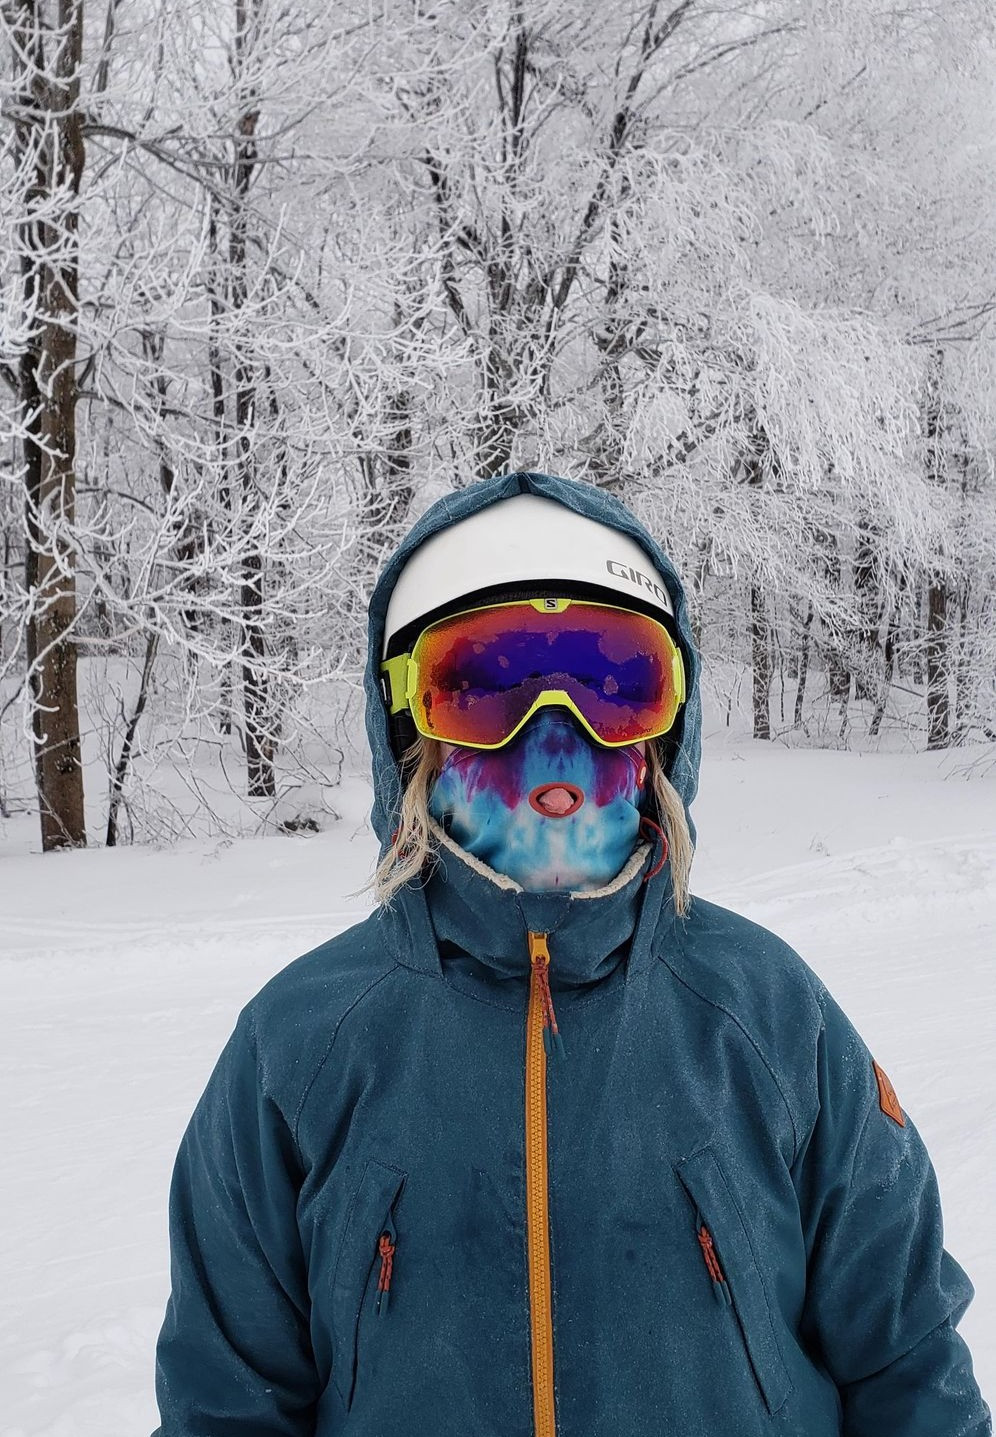 concordia outdoors club executive team silver linings snowboarding snow cold